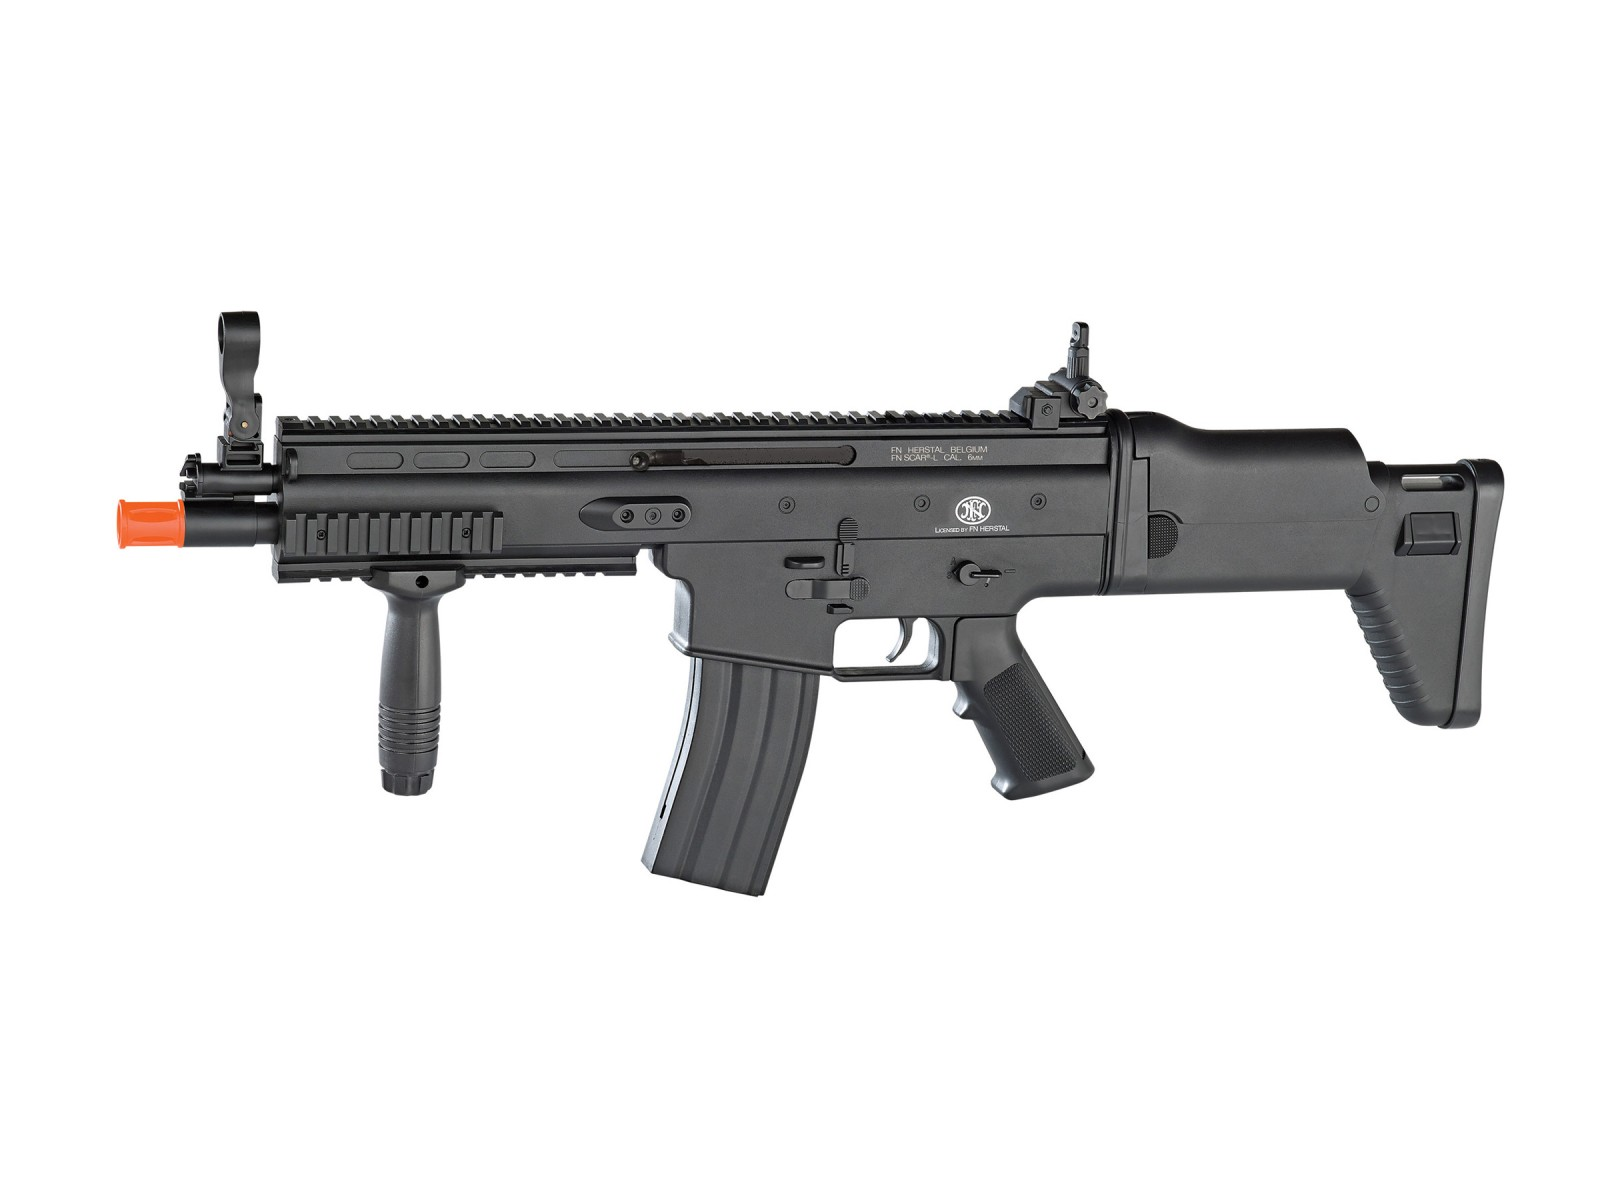 Cheap FN Herstal SCAR-L Spring Airsoft Rifle, Black 6mm